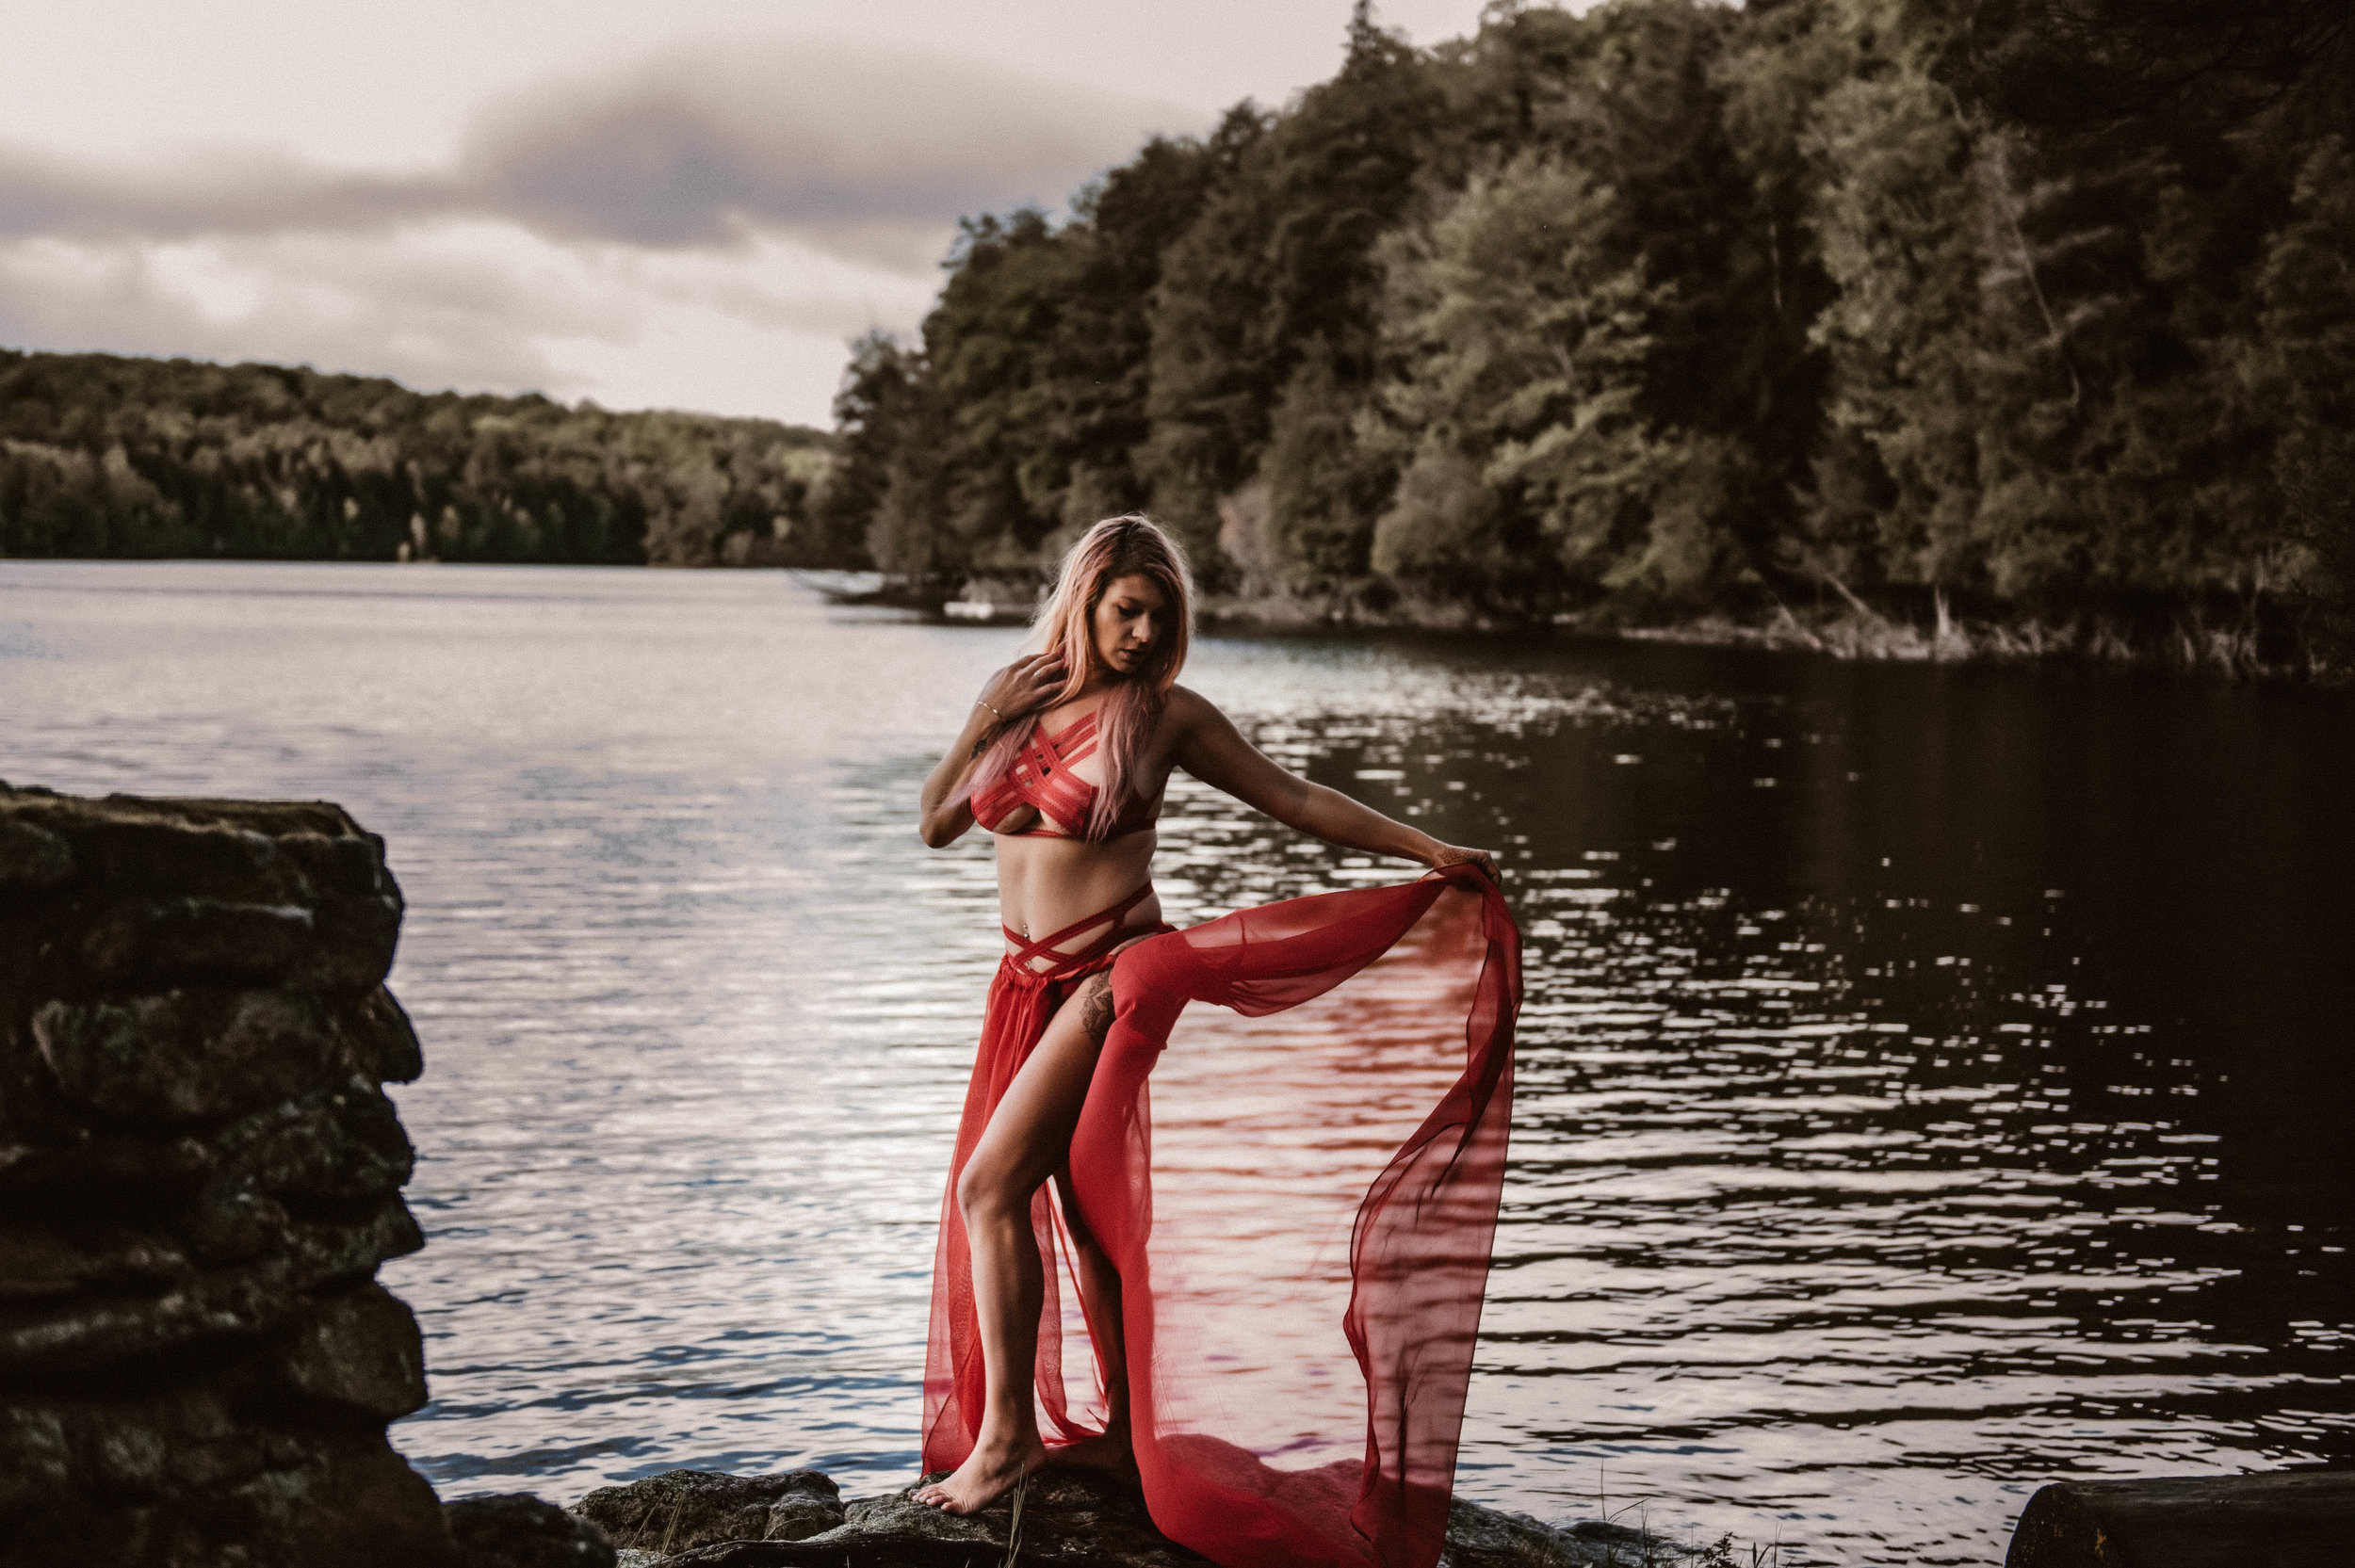 Boudoir photography at lake in red outfit outdoors in New York City